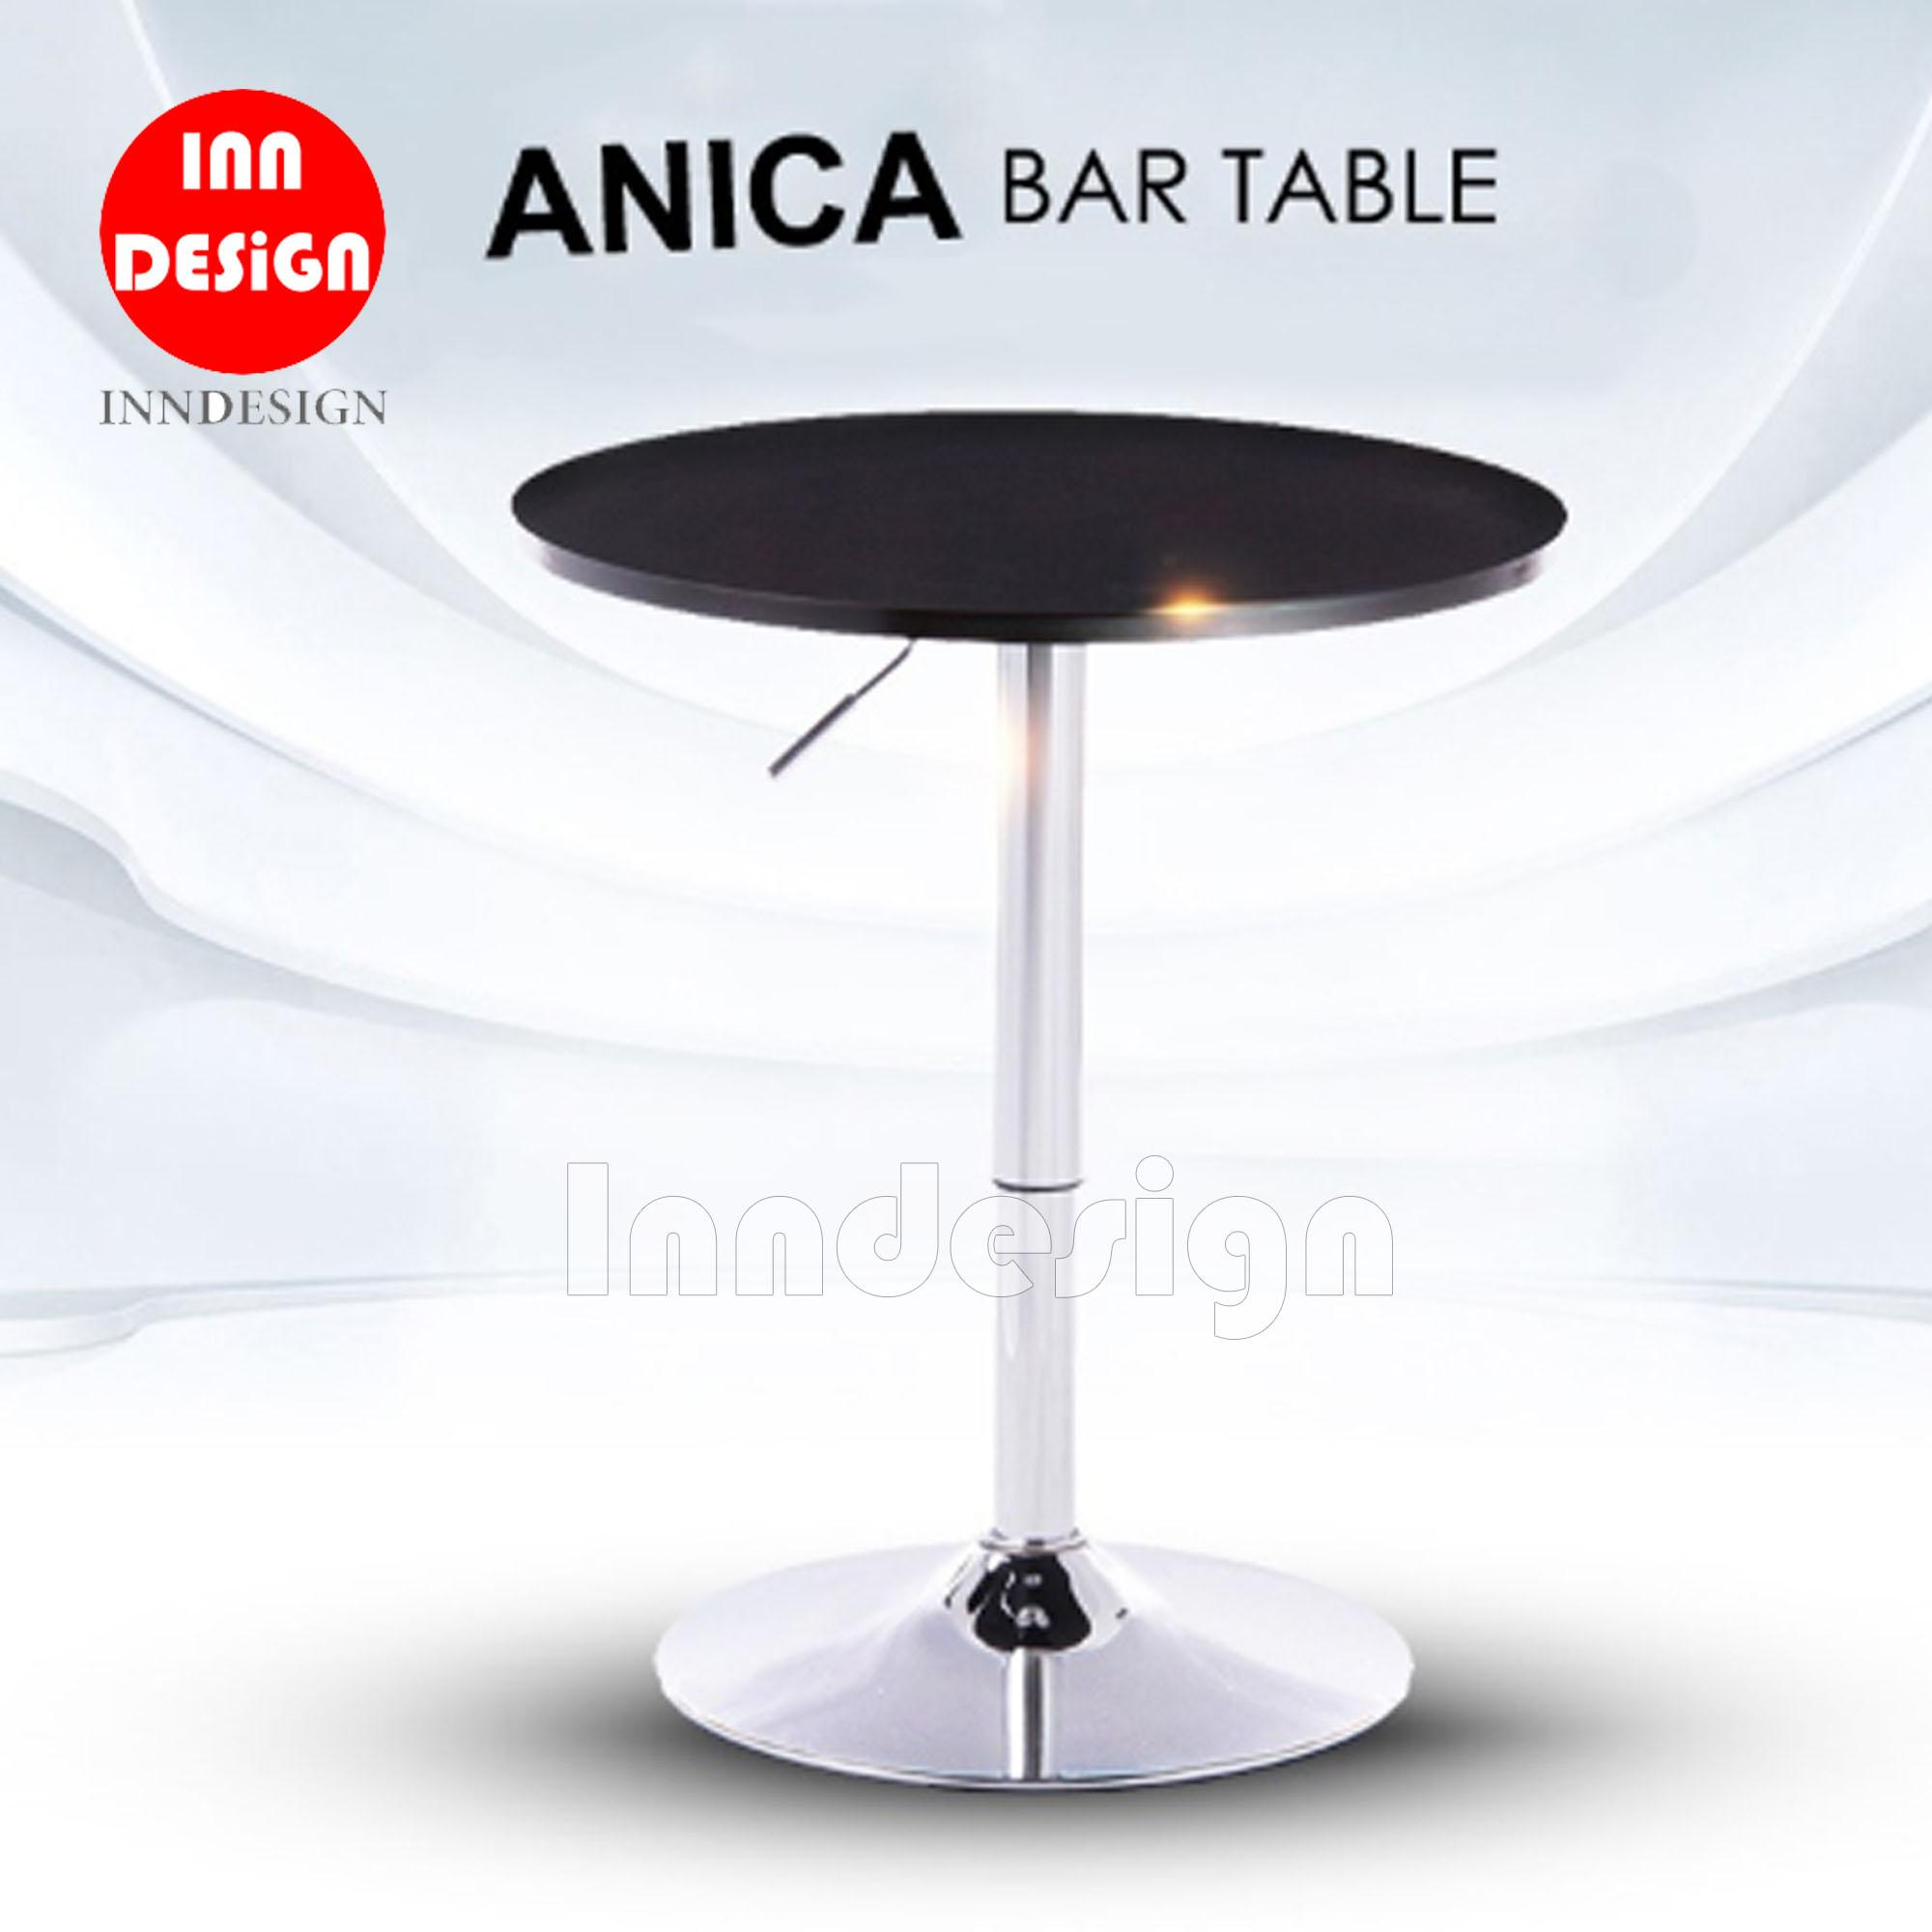 Anica Bar Table